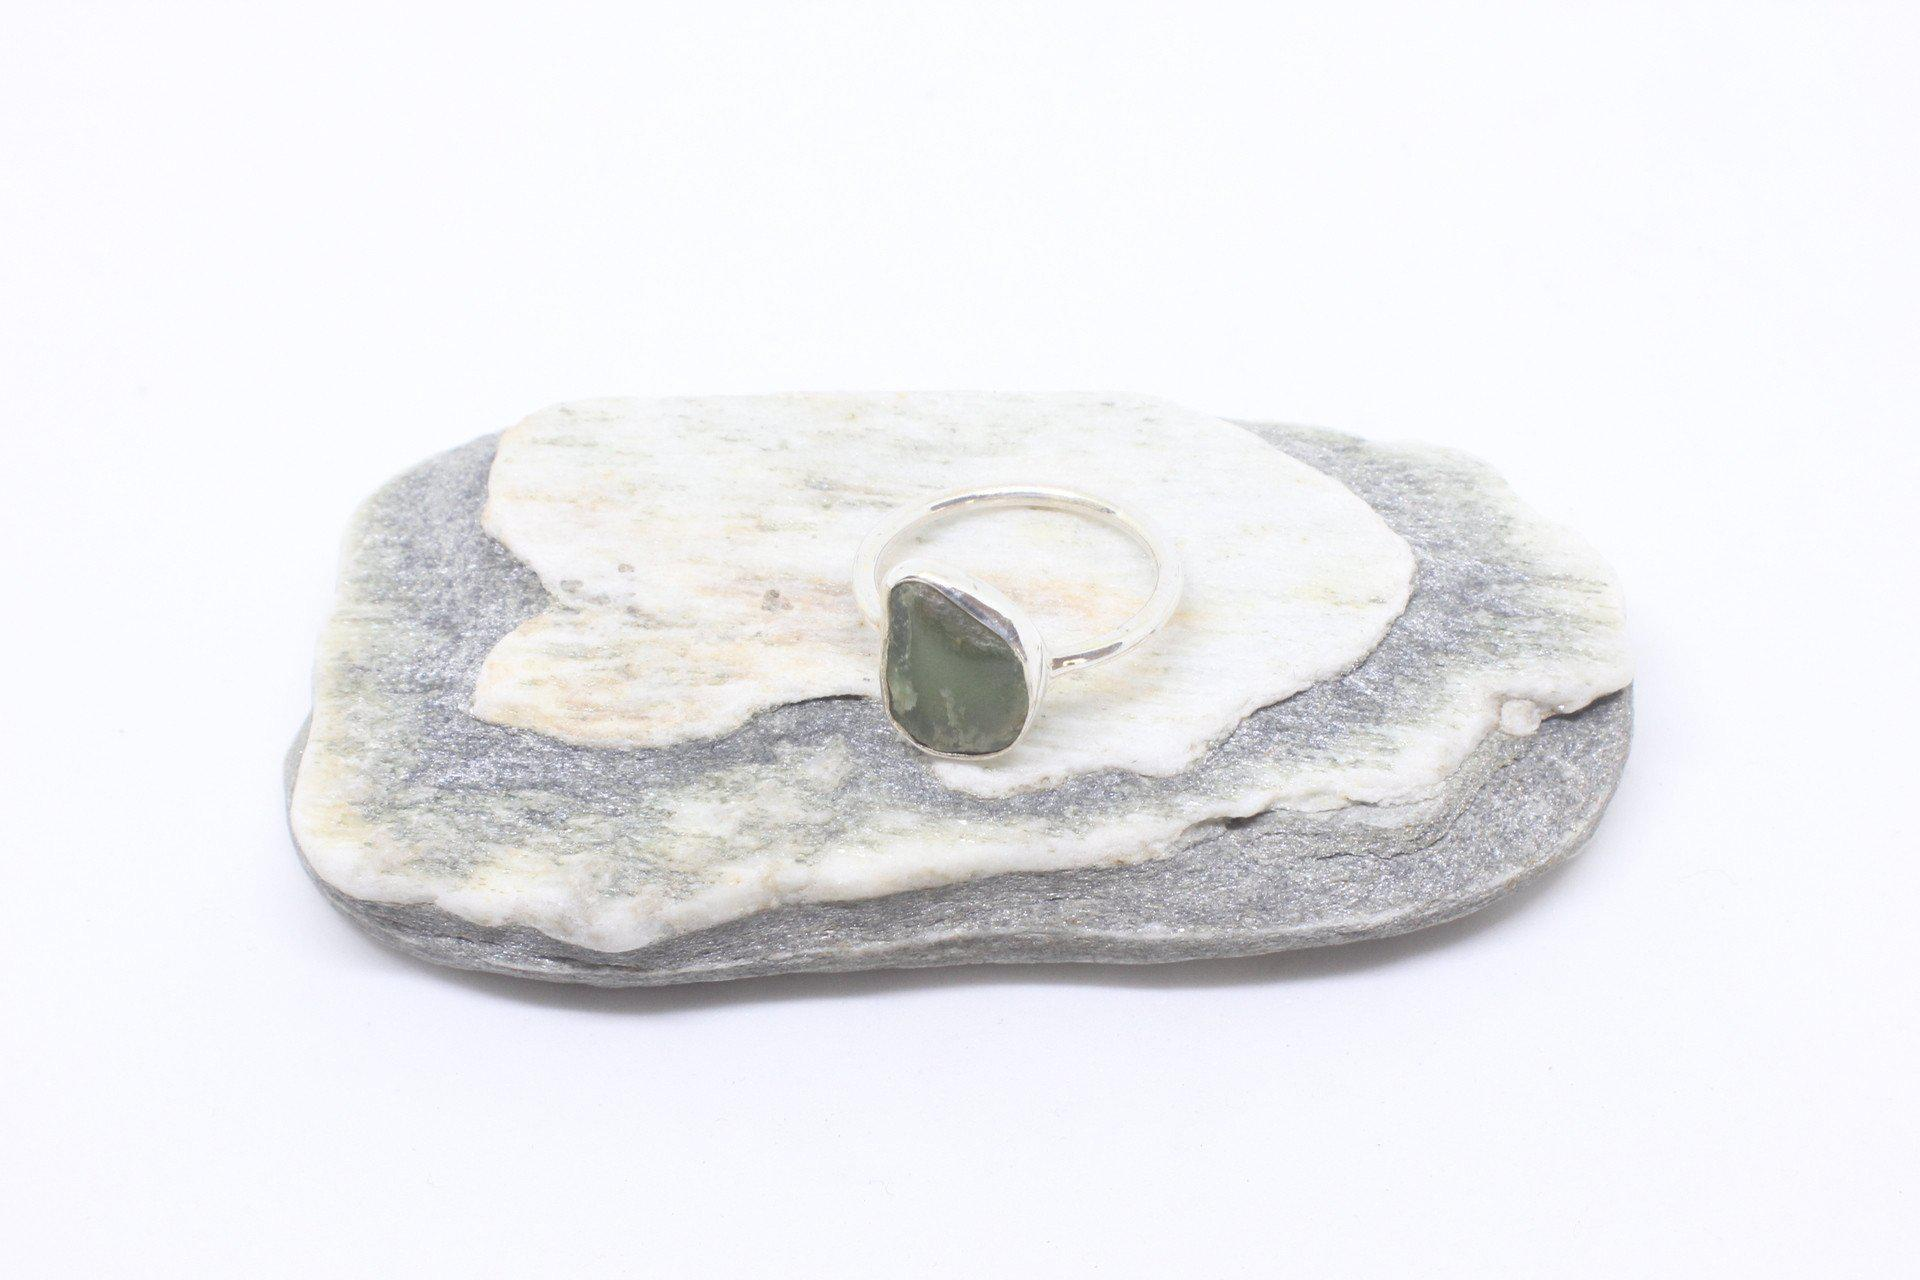 Amiria Silver Greenstone Ring-Jewellery-Not specified-The Outpost NZ